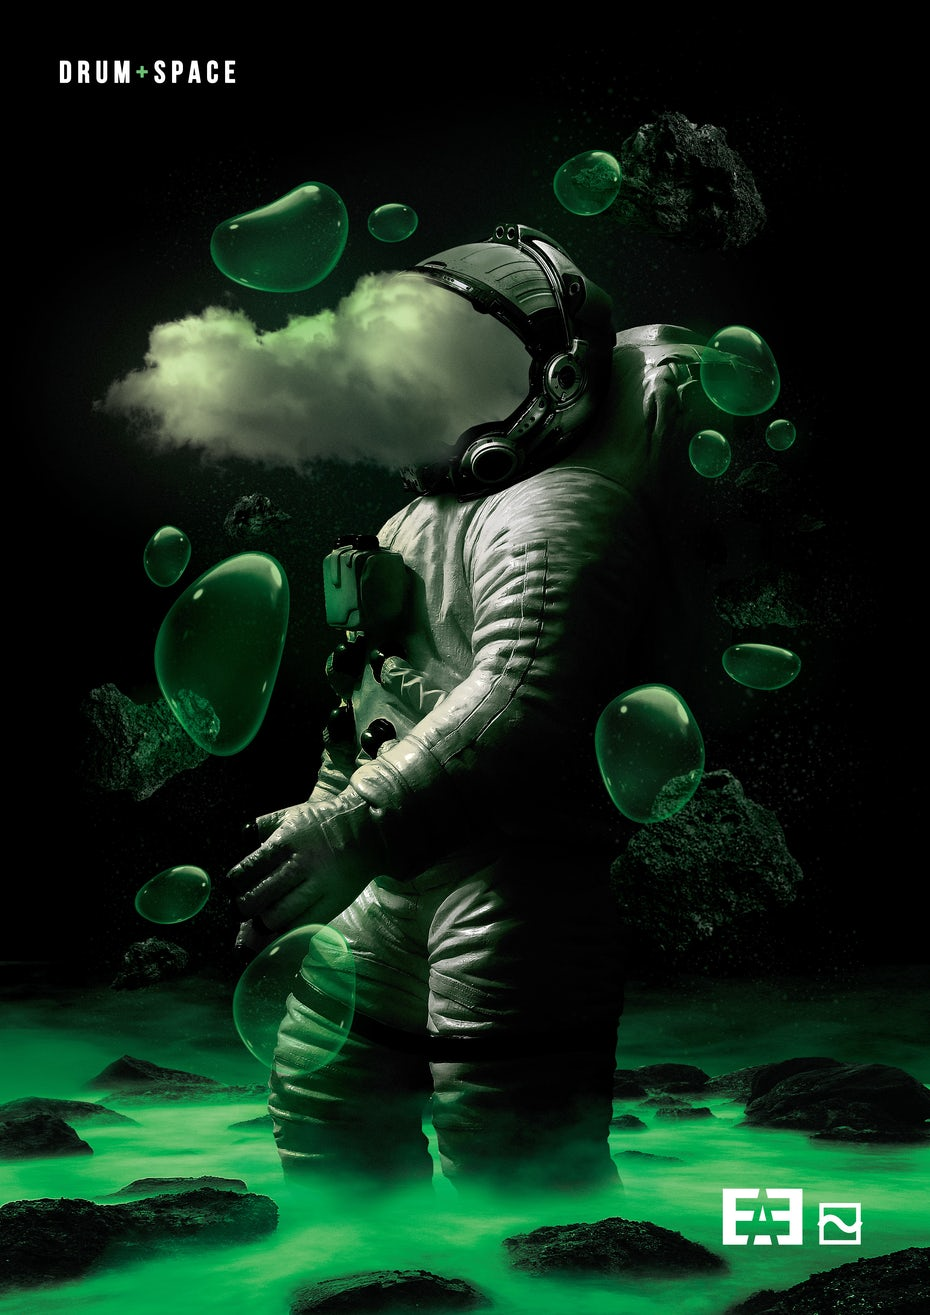 Poster design showing an astronaut full of smoke